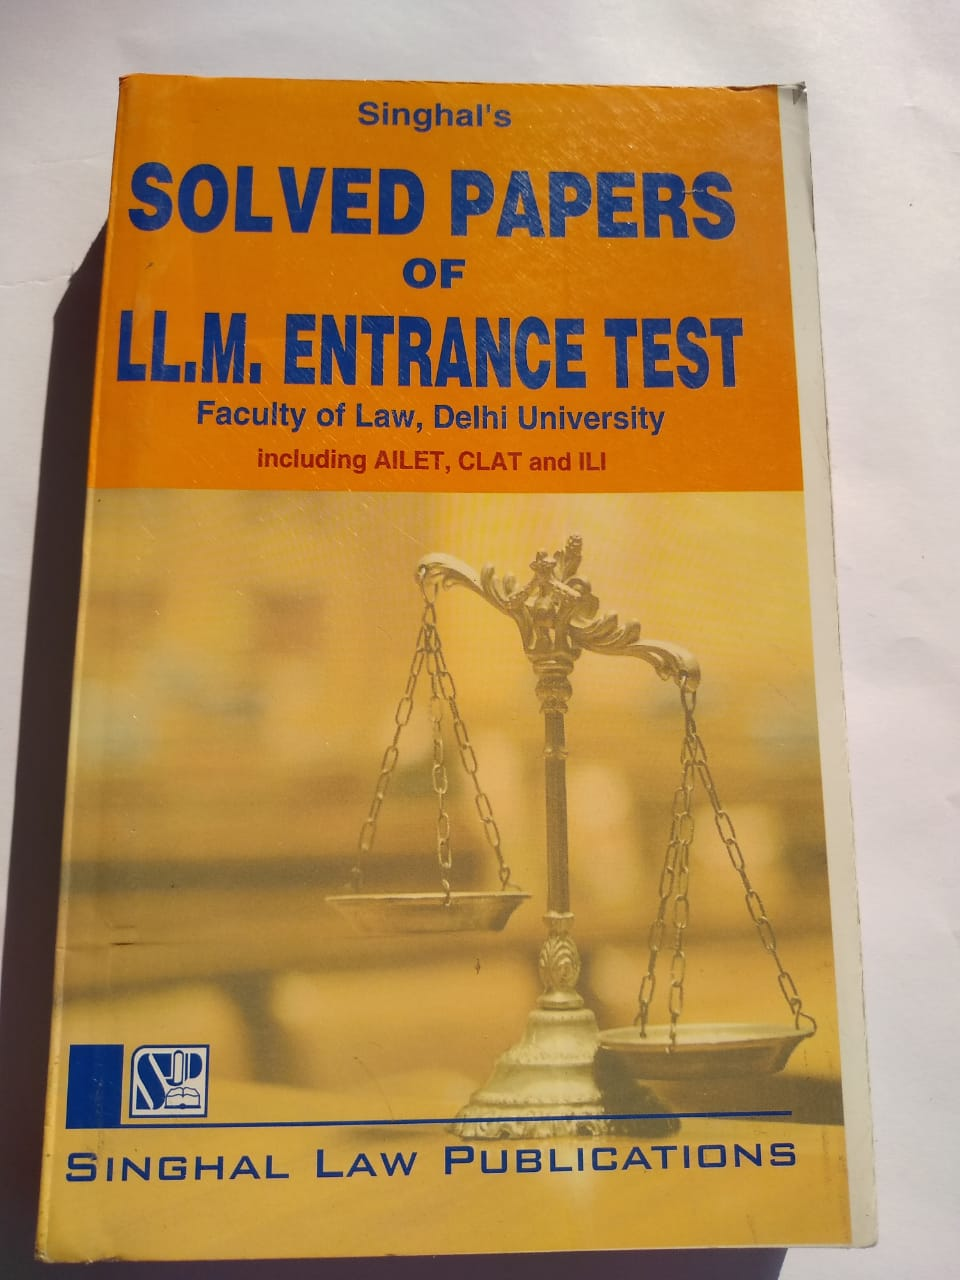 Singhal's Solved Papers Of LL.M. Entrance Test